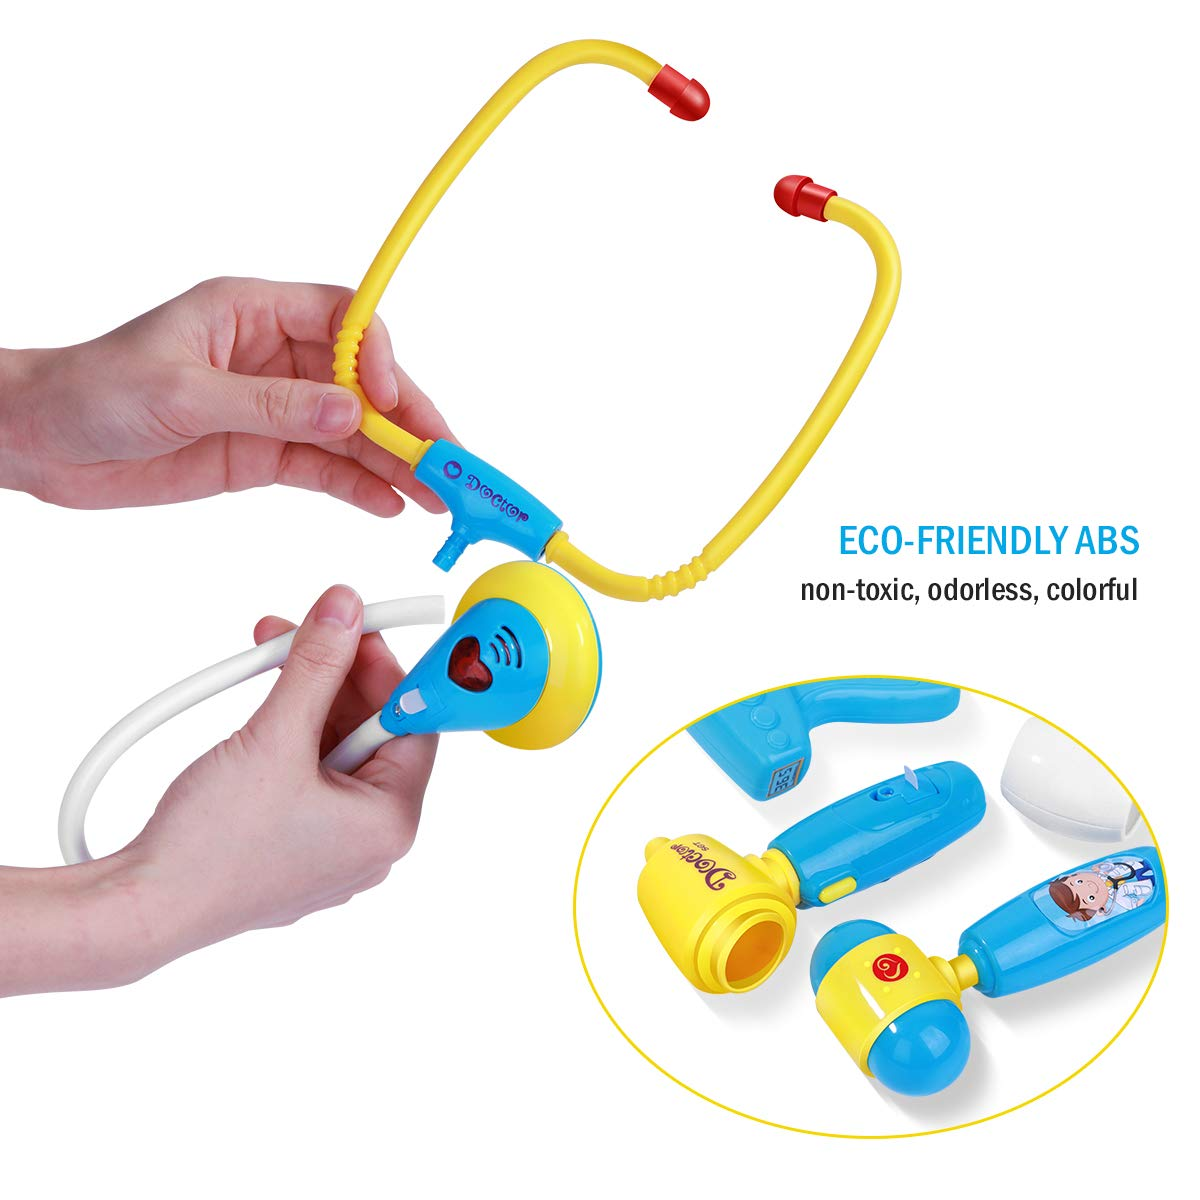 iBaseToy Doctor Kit for Kids, 27Pcs Pretend Medical Doctor Medical Playset with Electronic Stethoscope, Medical Kits Gift, Educational Doctor Toys for Toddler Boys Girls (Blue) by iBaseToy (Image #4)